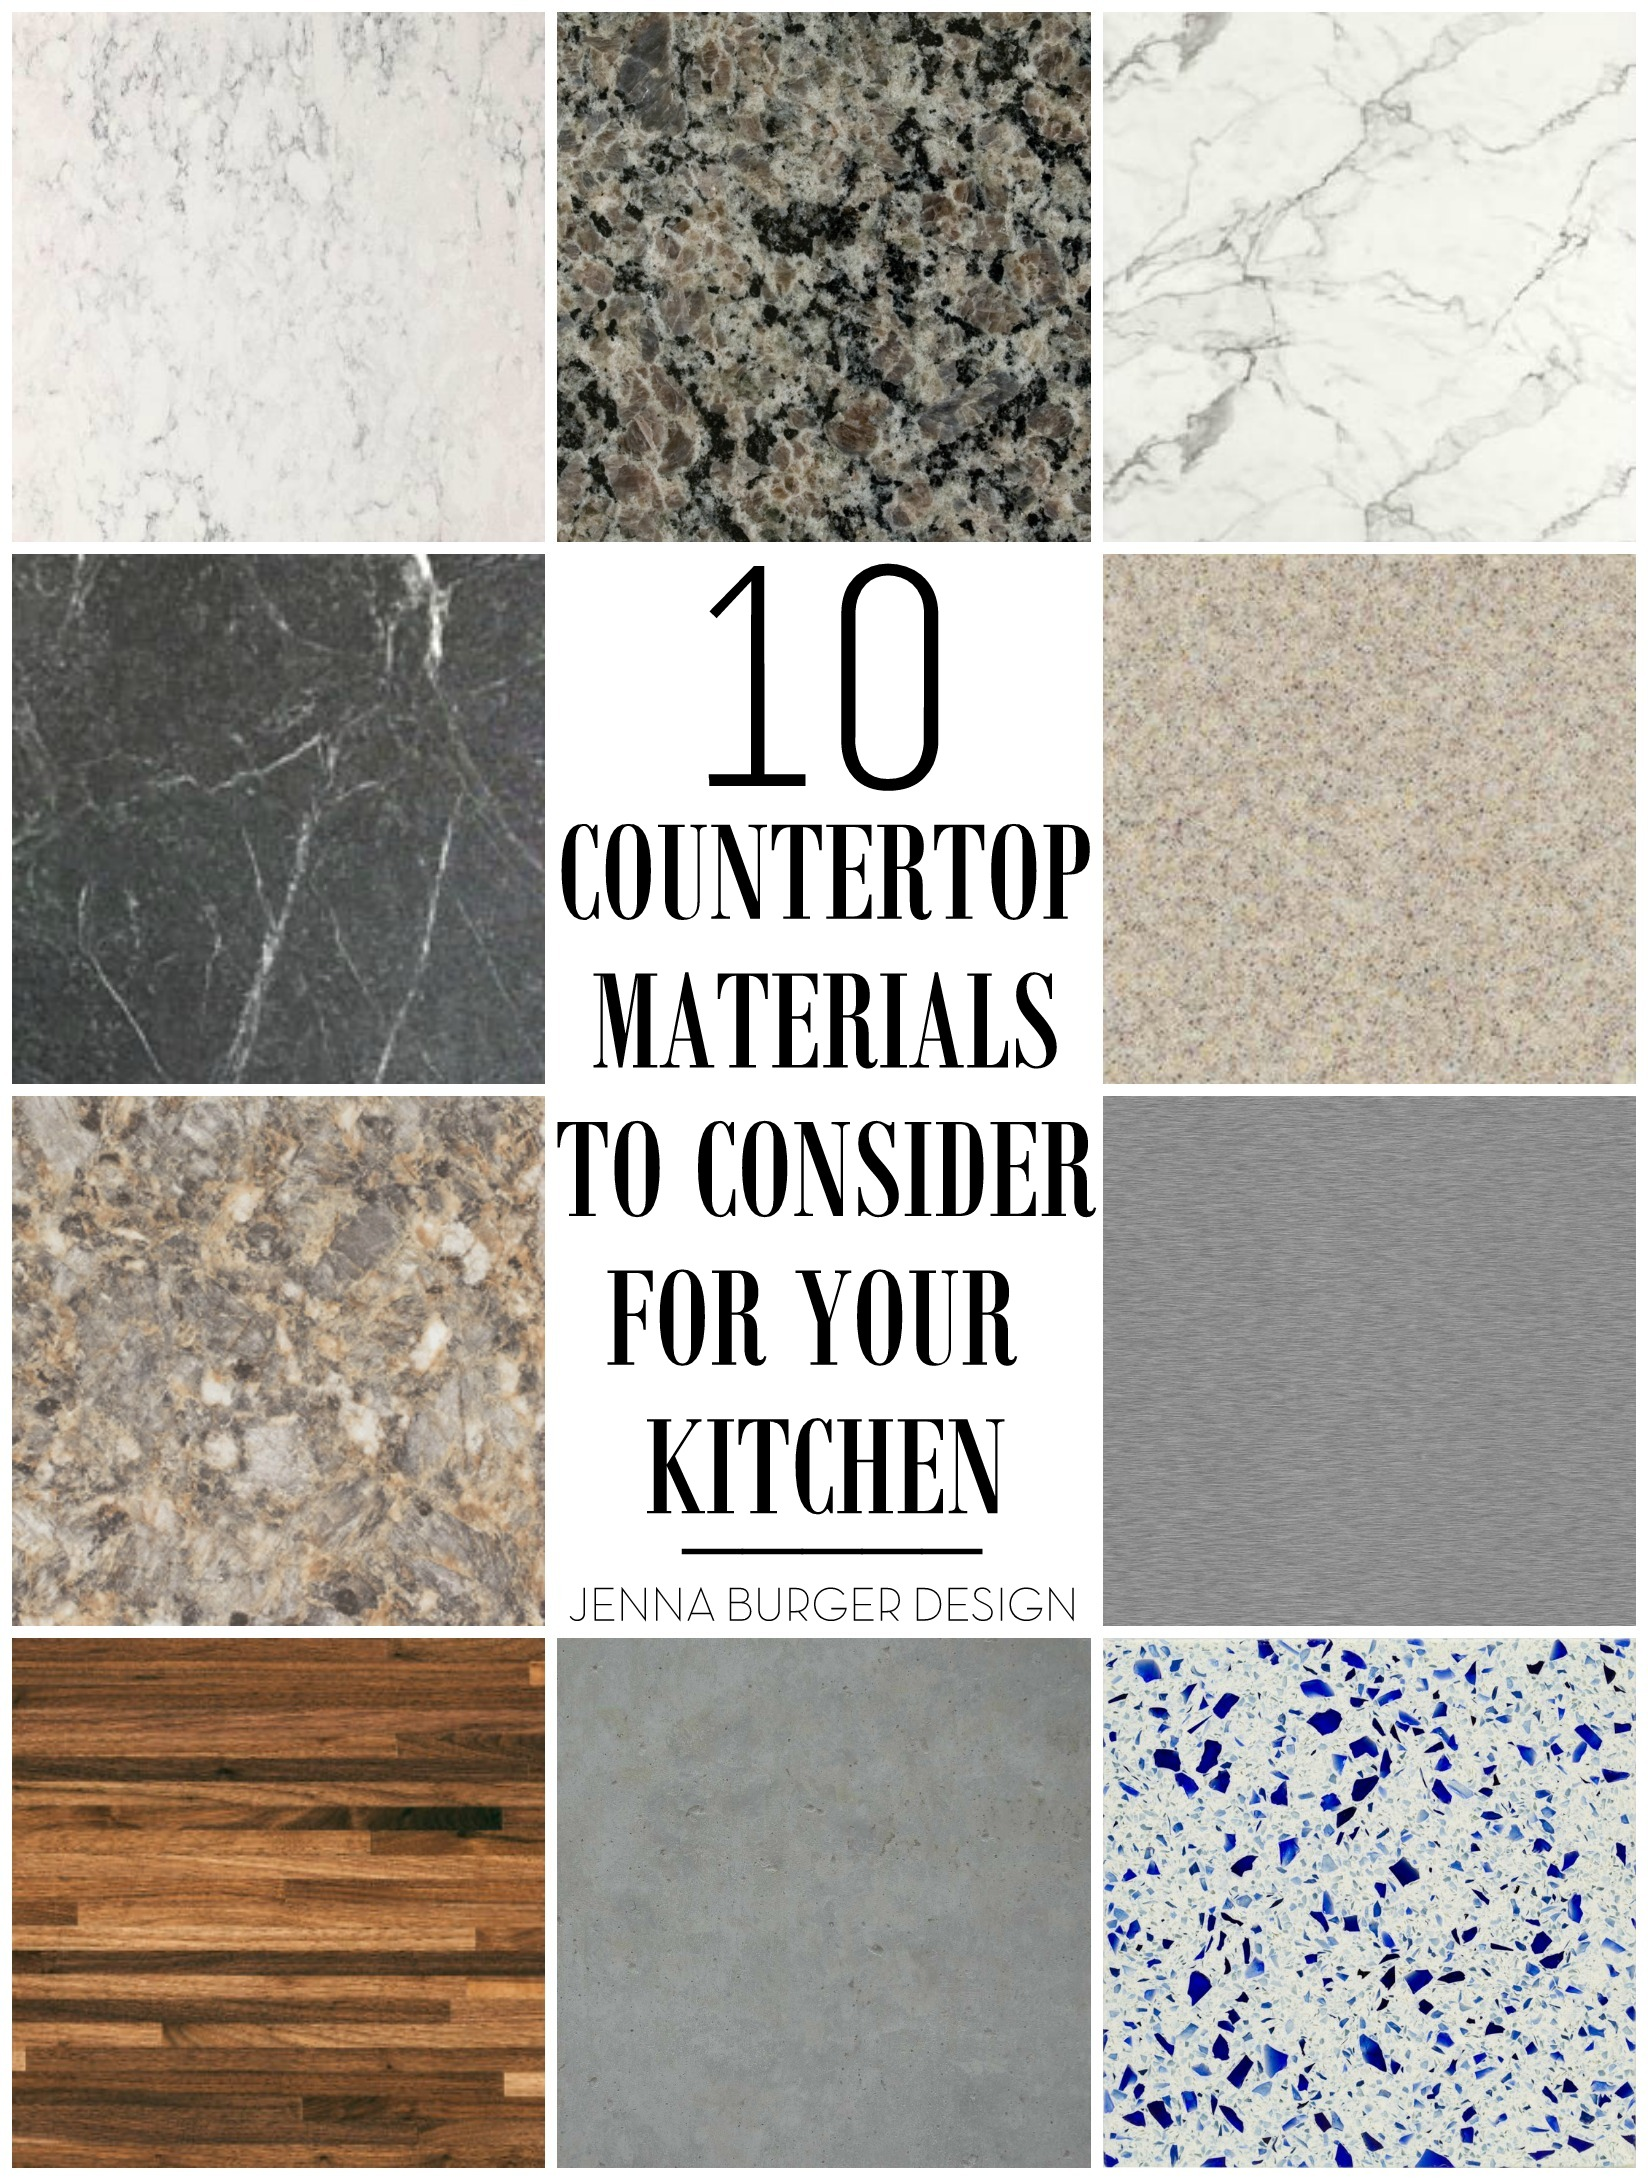 Different Types Of Kitchen Countertop Materials 10 Countertop Materials To Consider For The Kitchen